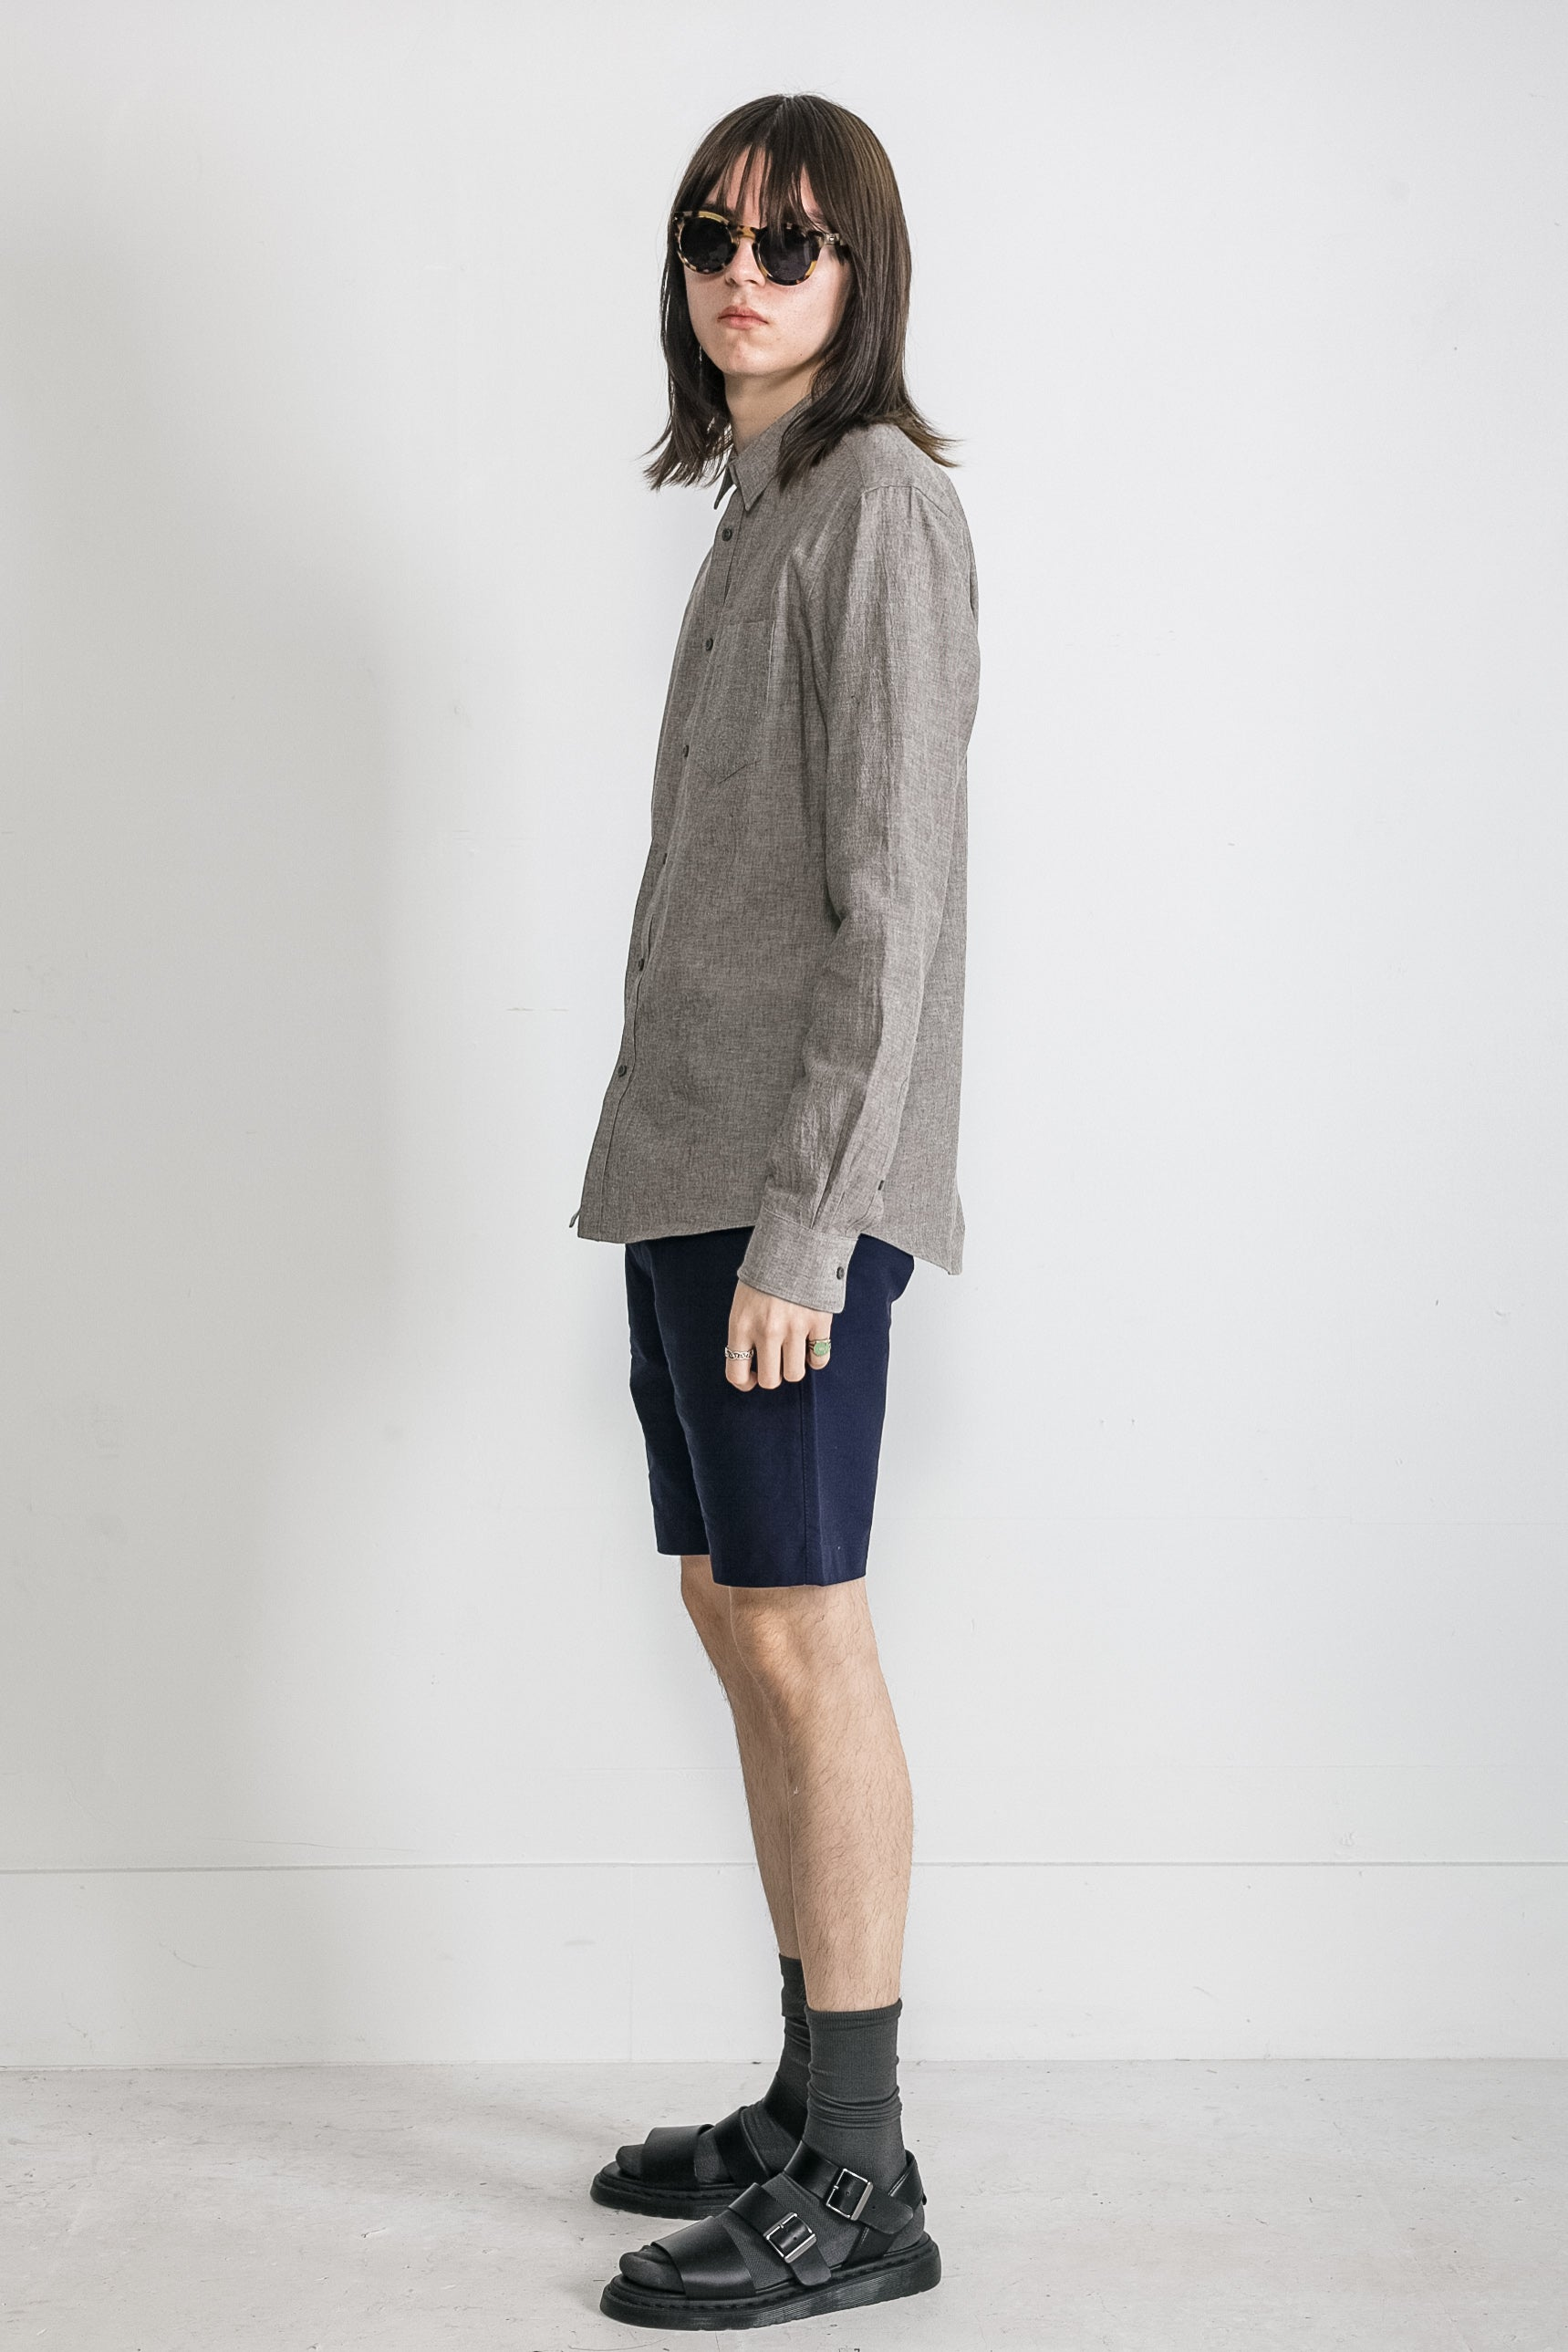 Japanese Dyed Canvas in Grey 003